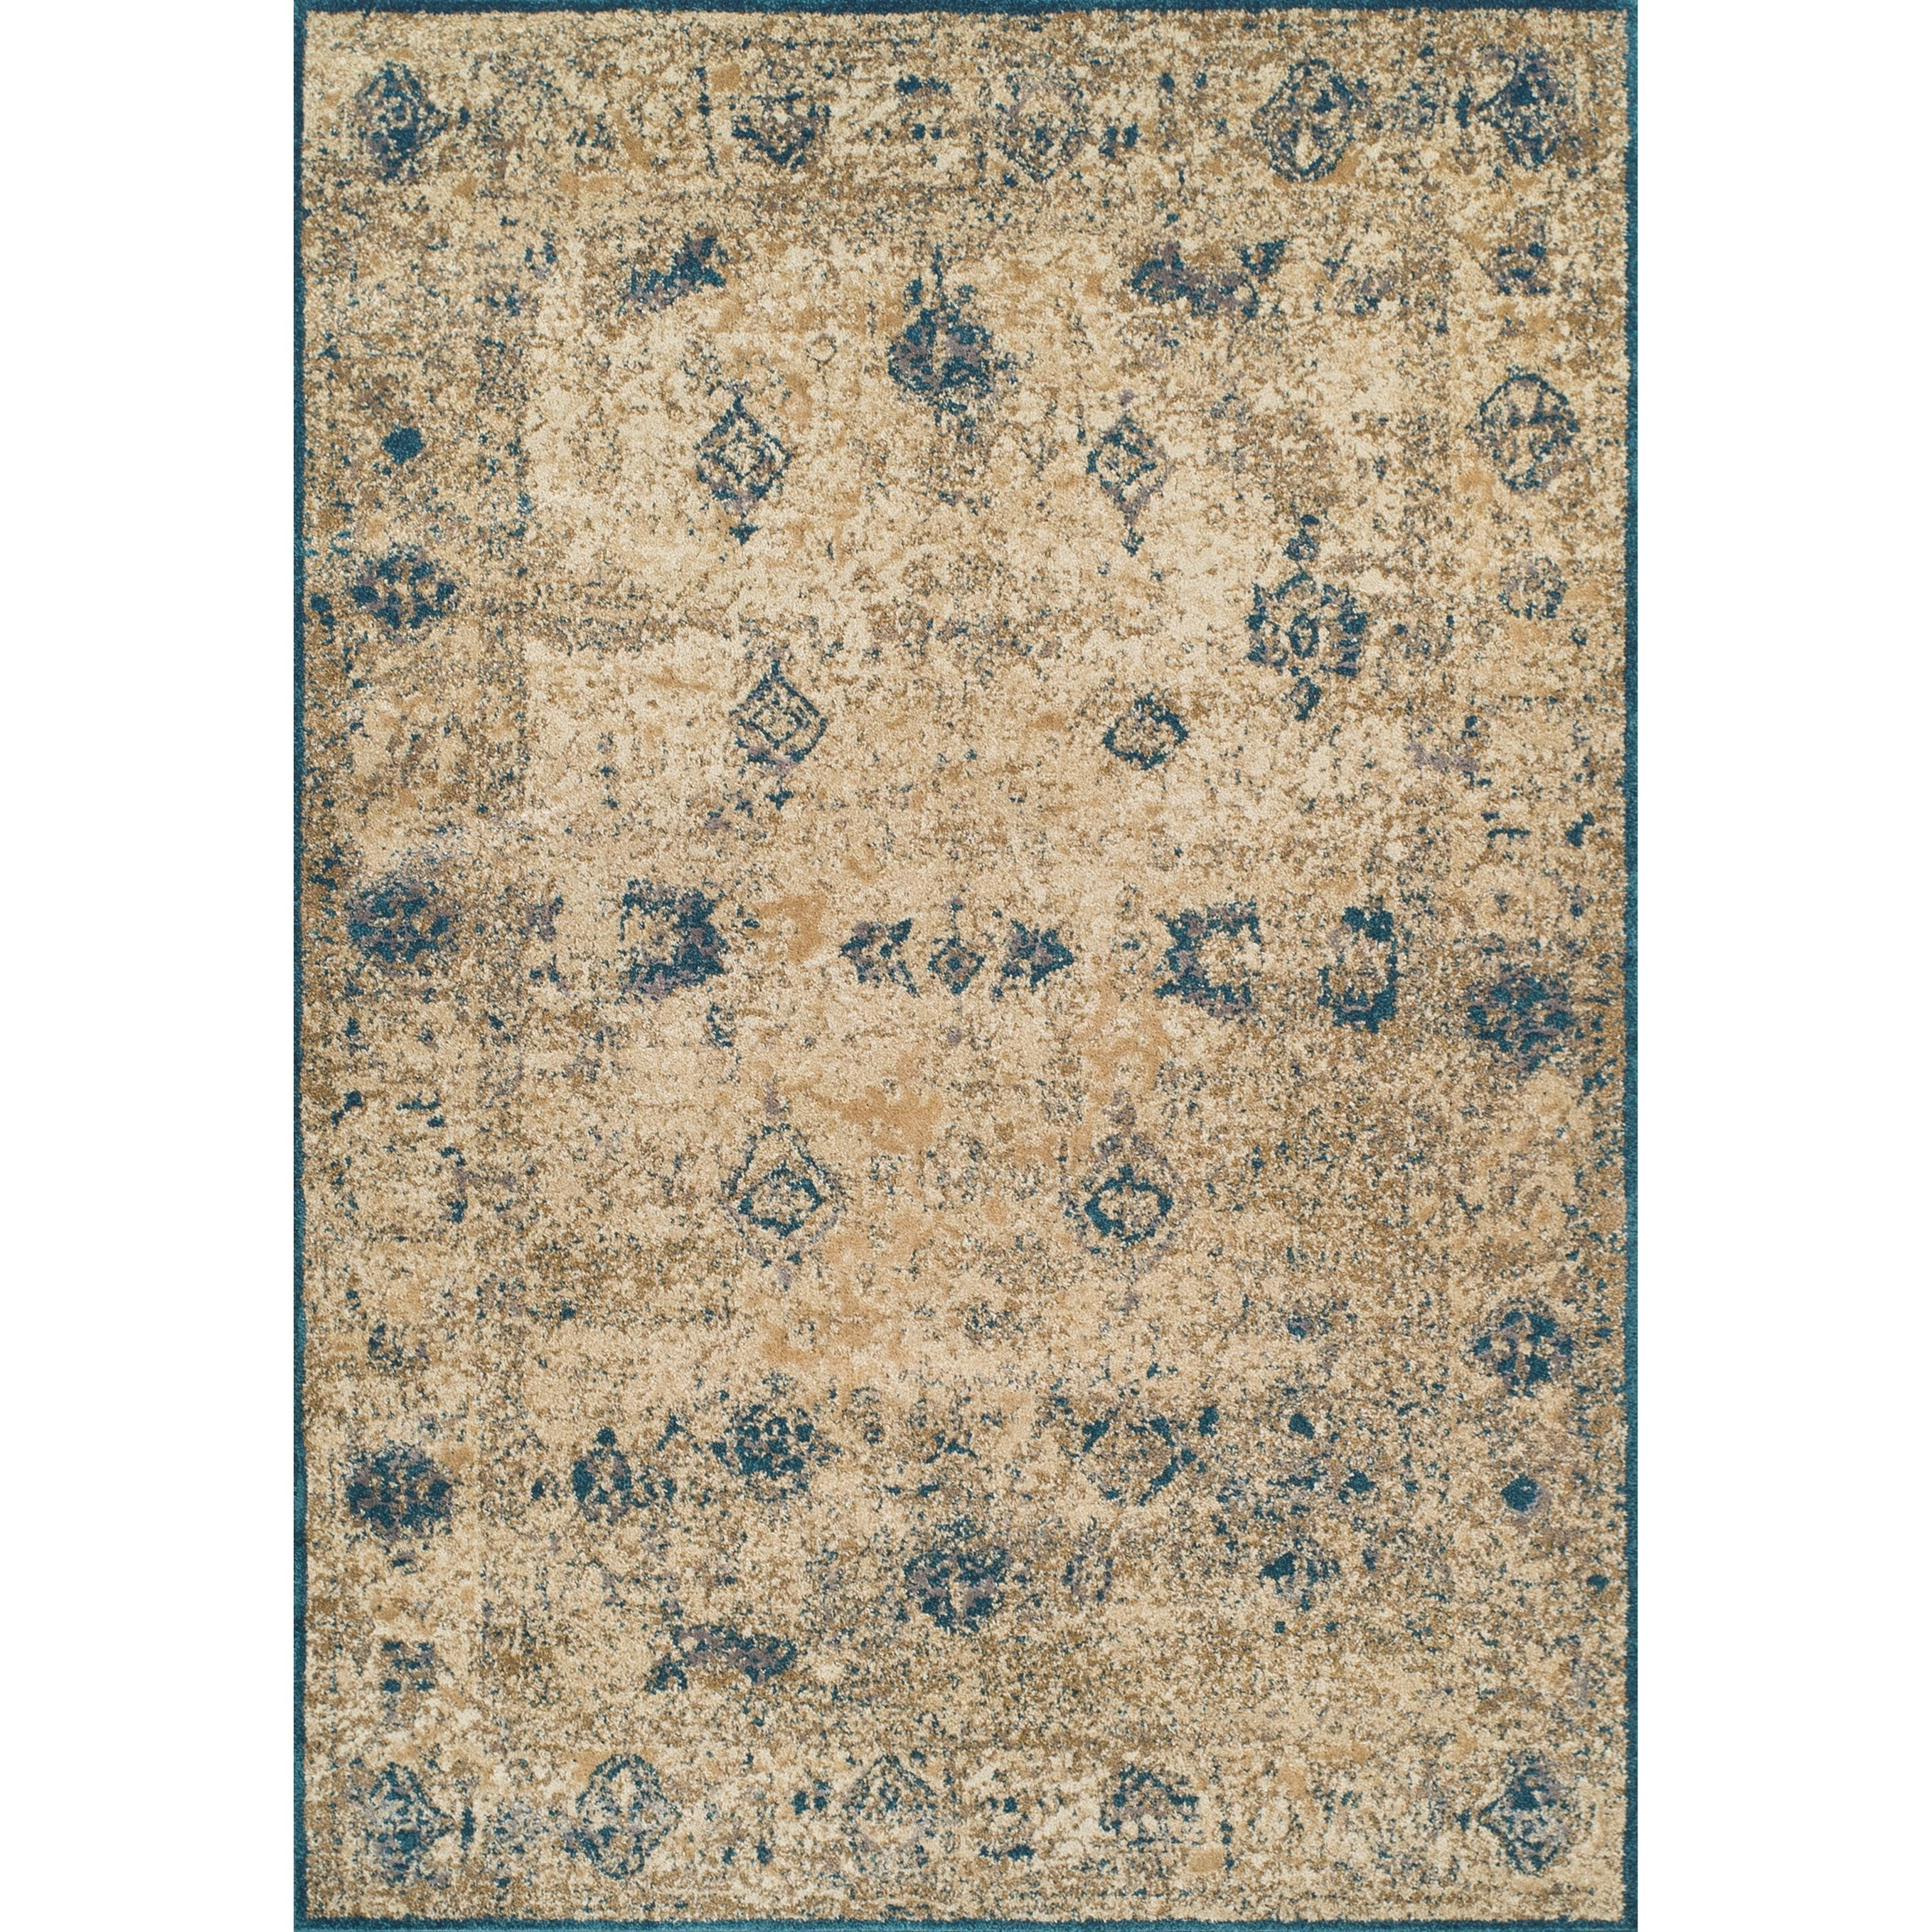 """Antiquity Ivory / Teal 9'6""""X13'2"""" Rug by Dalyn at Sadler's Home Furnishings"""